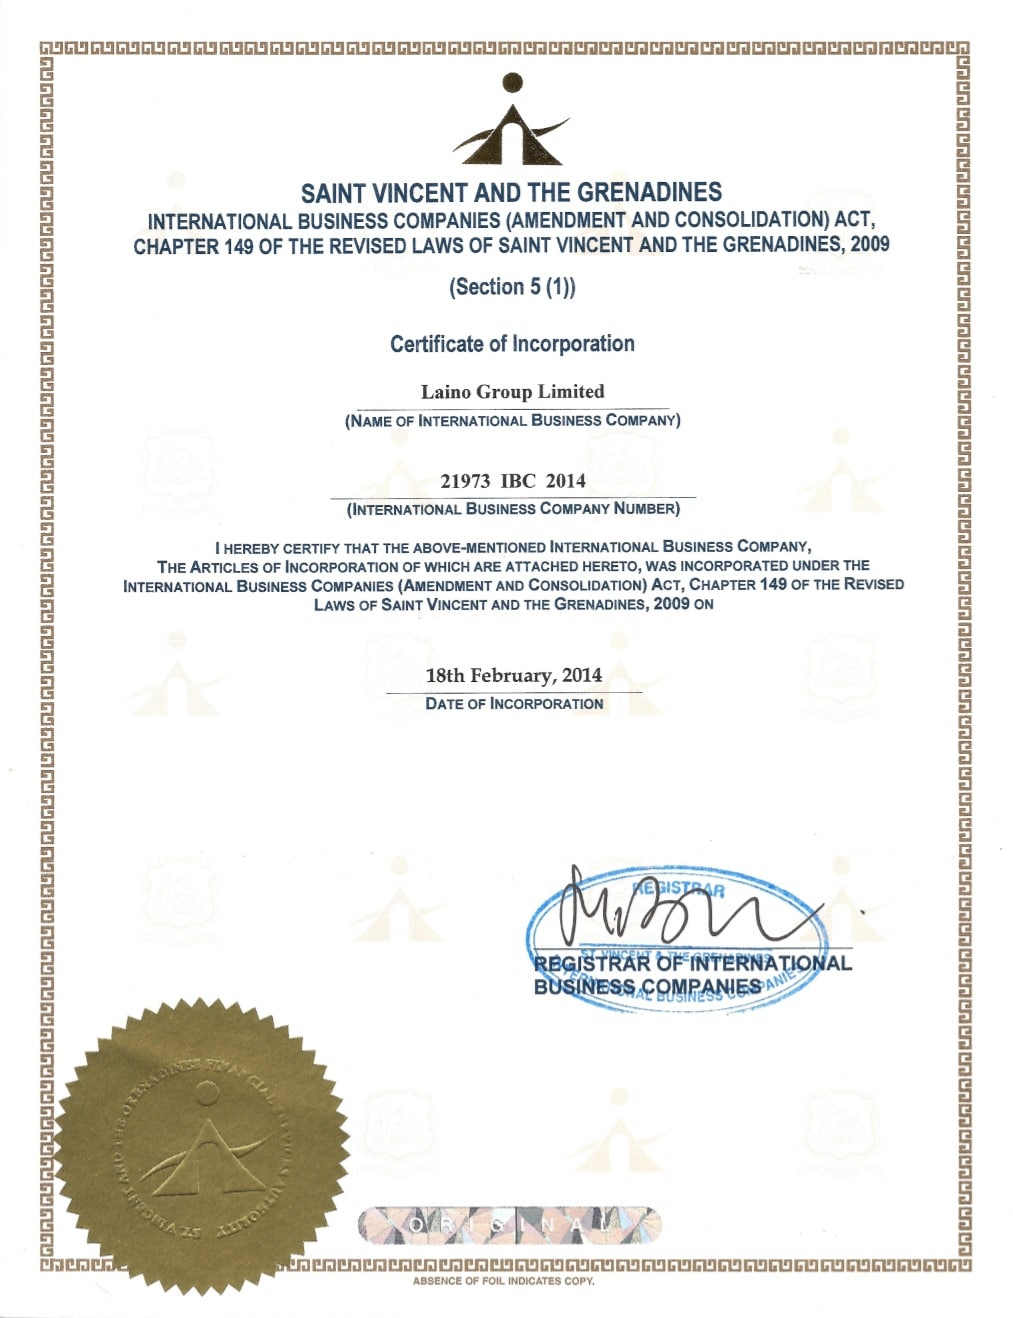 Laino Group Ltd SVGFSA certificate of incorporation